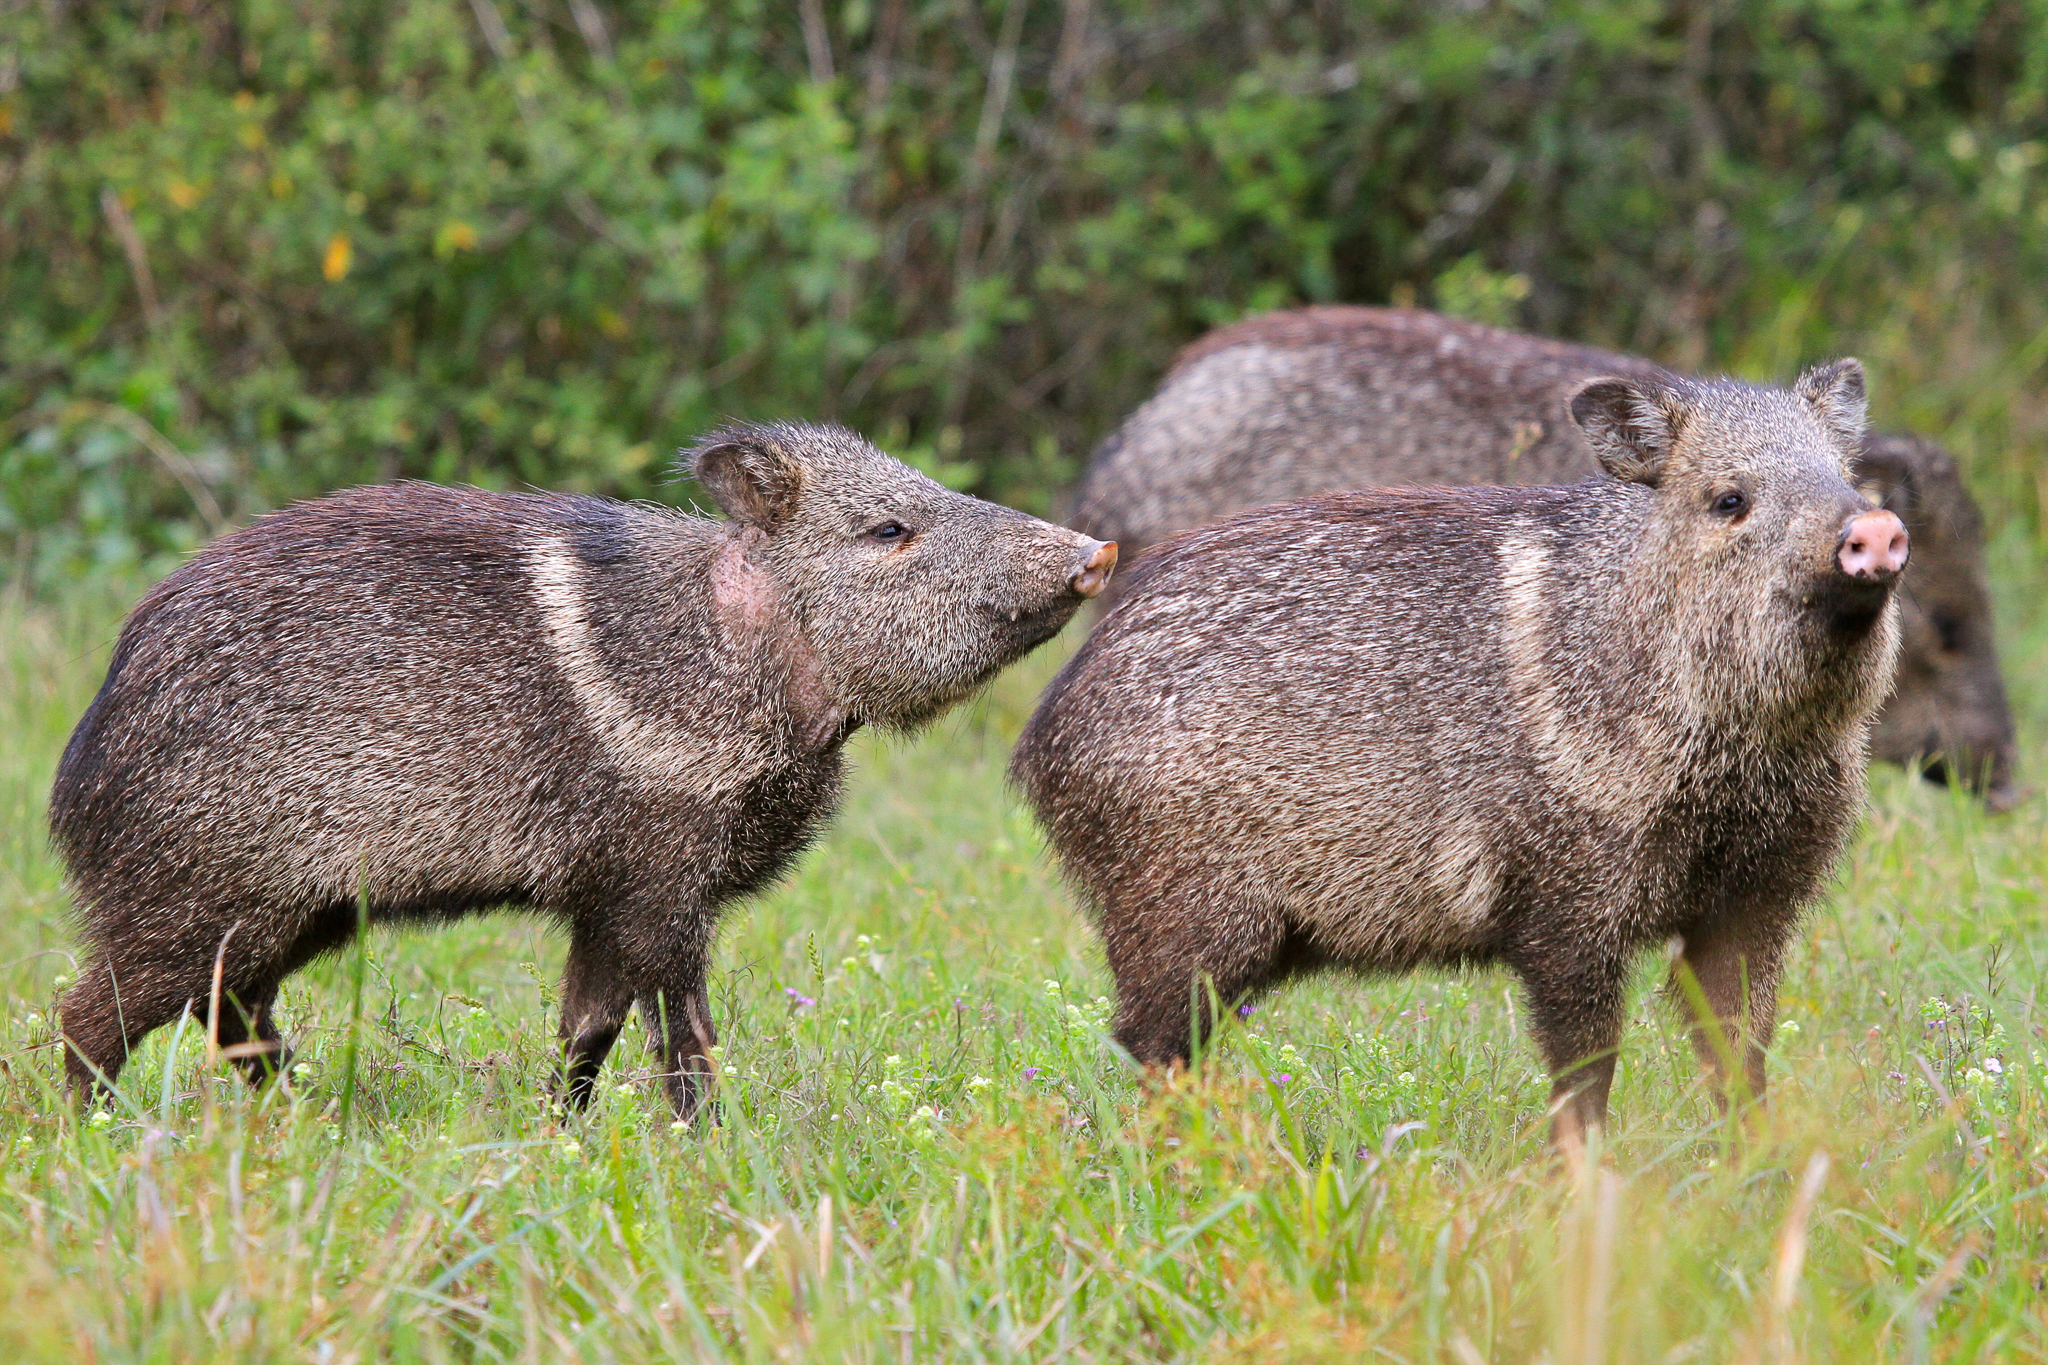 Collared peccaries have been reintroduced to the Iberá wetlands as part of an ambitious rewilding project. —Photo by Mike Unwin